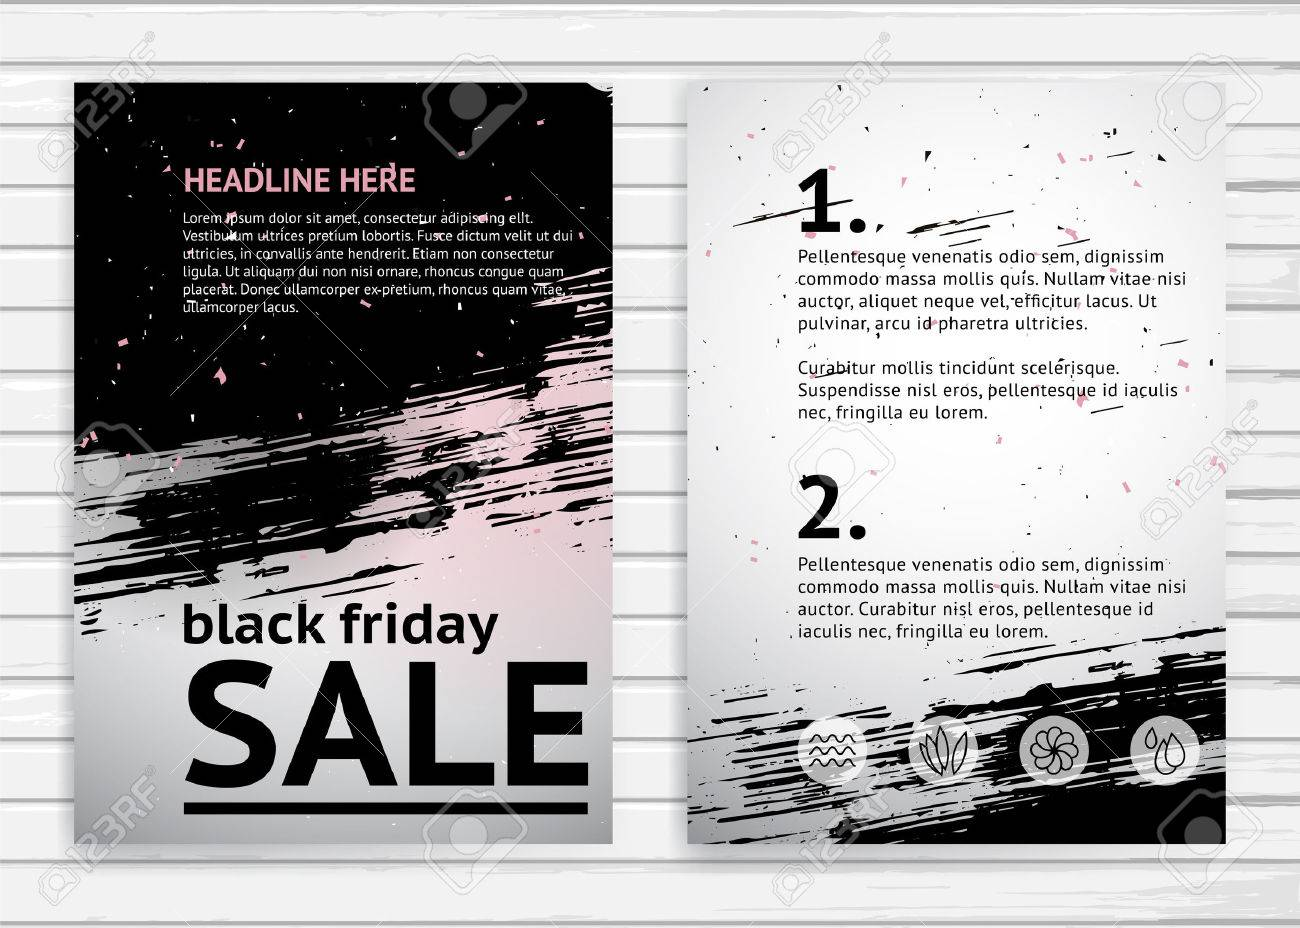 Poster design sample - Black Friday Sale A4 Size Poster Design Template Vector Banner In Grunge Style With Sample